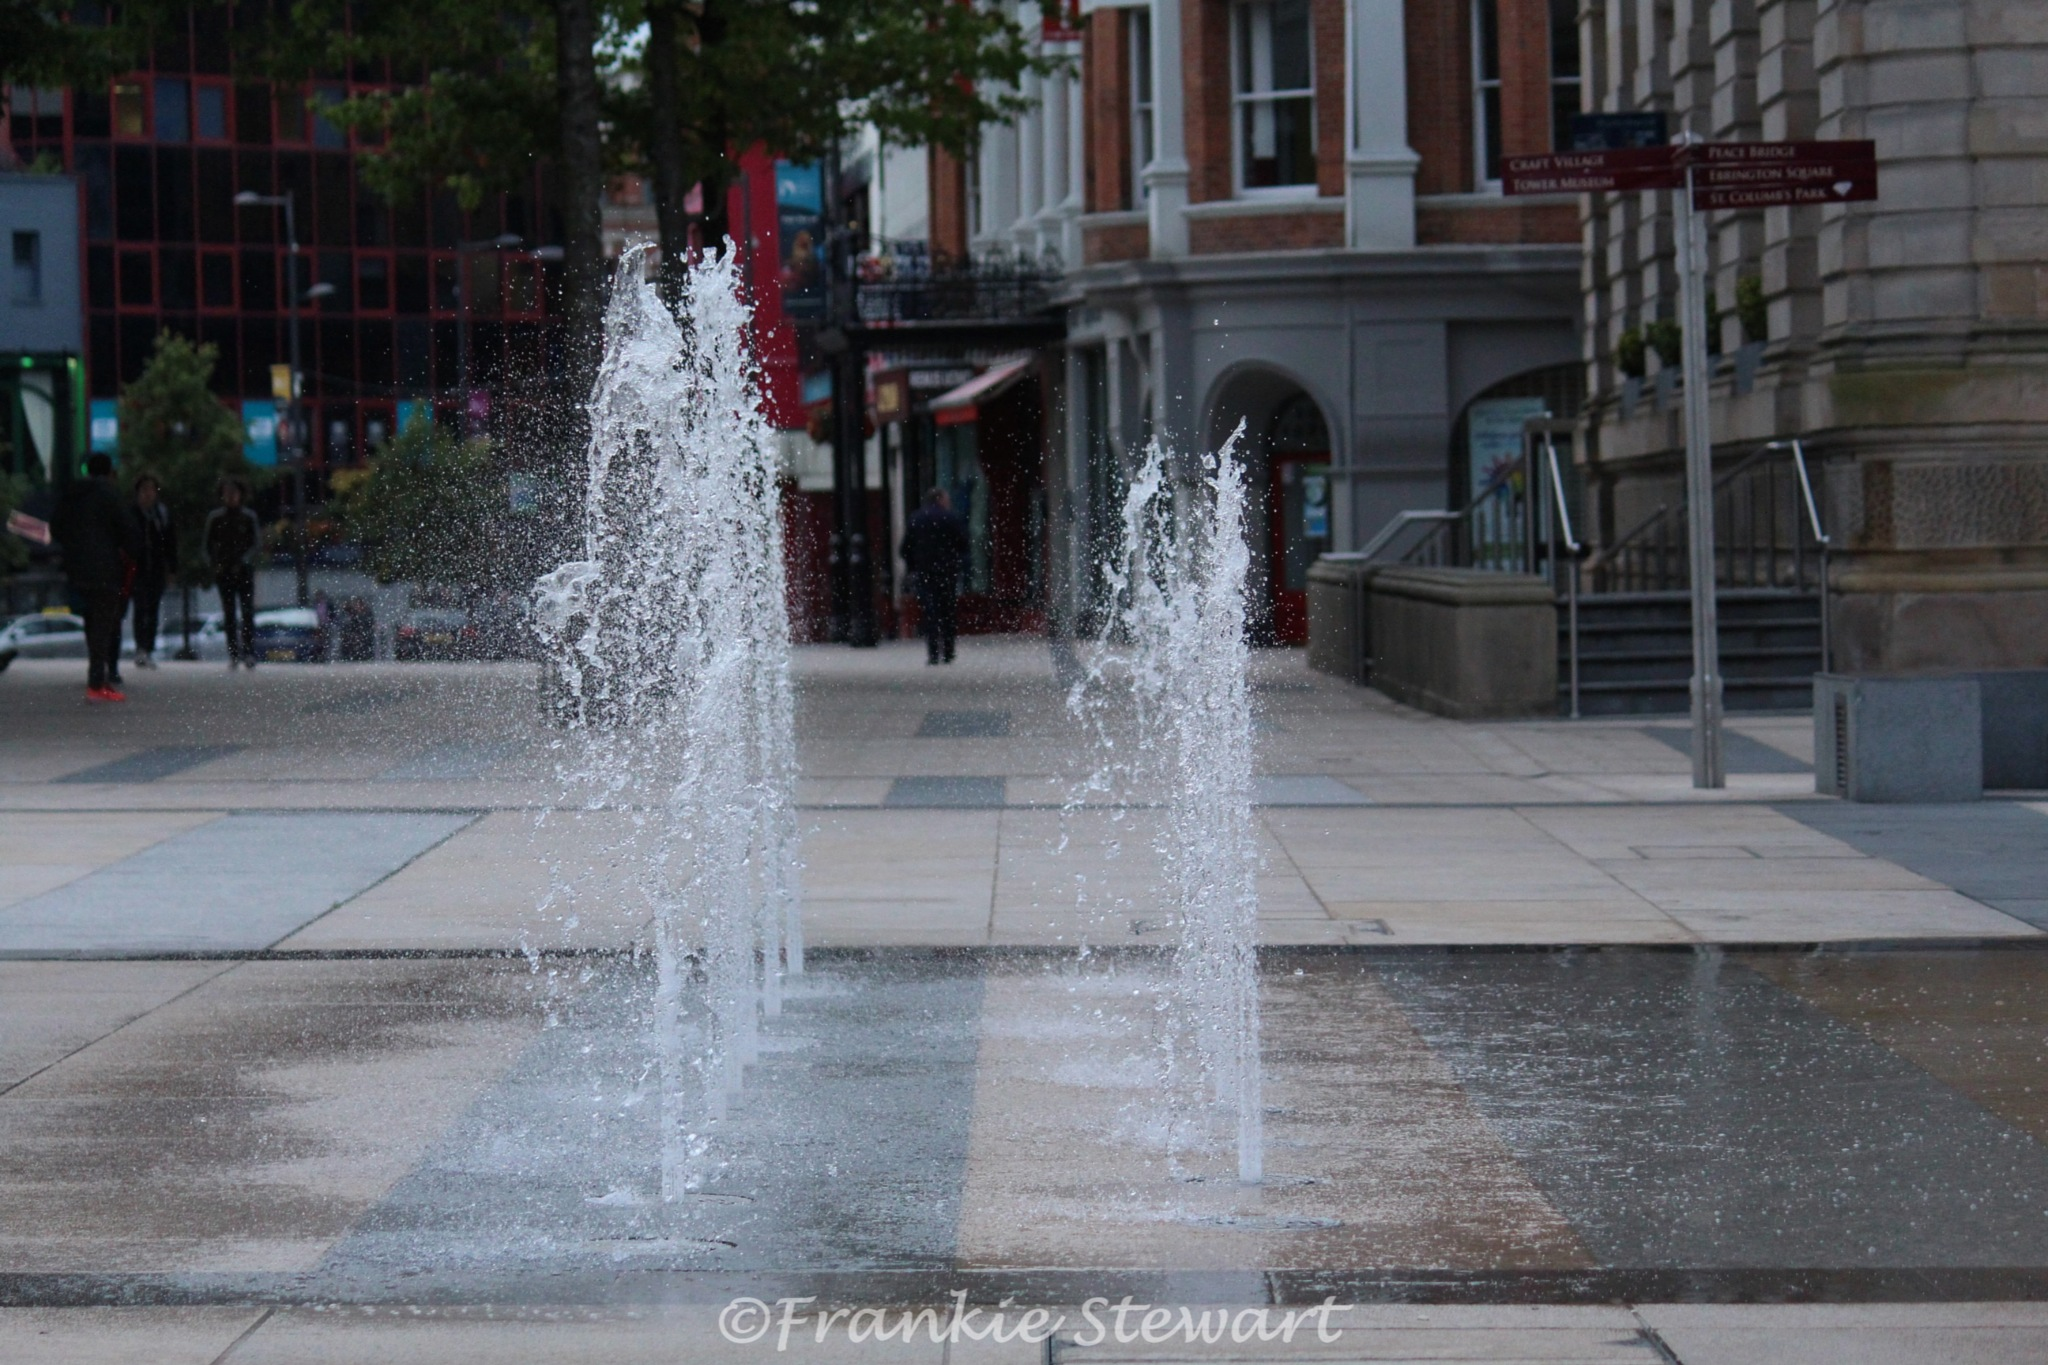 Fountain in the Square by FrankieS